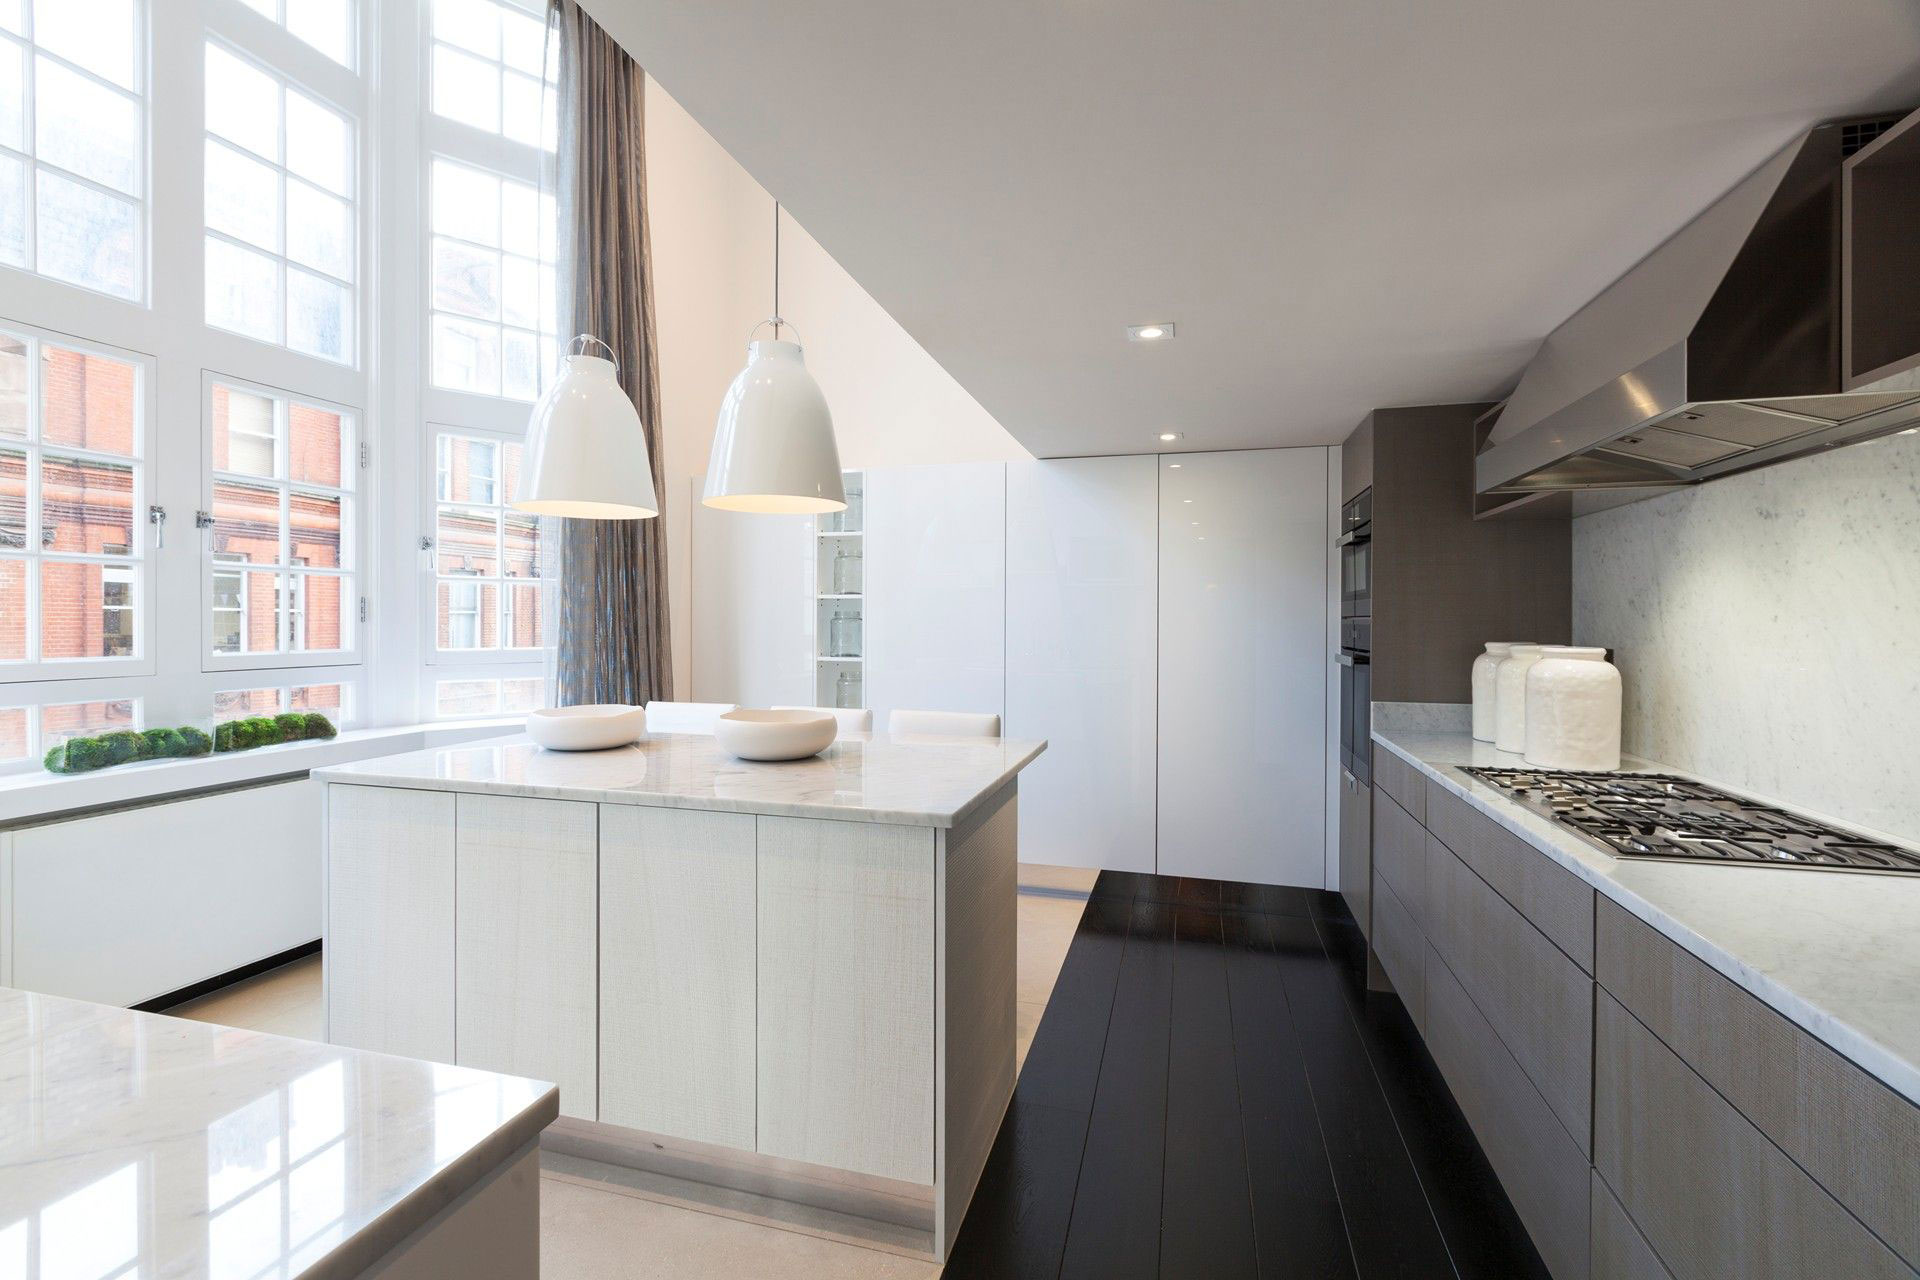 Kitchen Island, Pendant Lighting, Henrietta Street Apartment